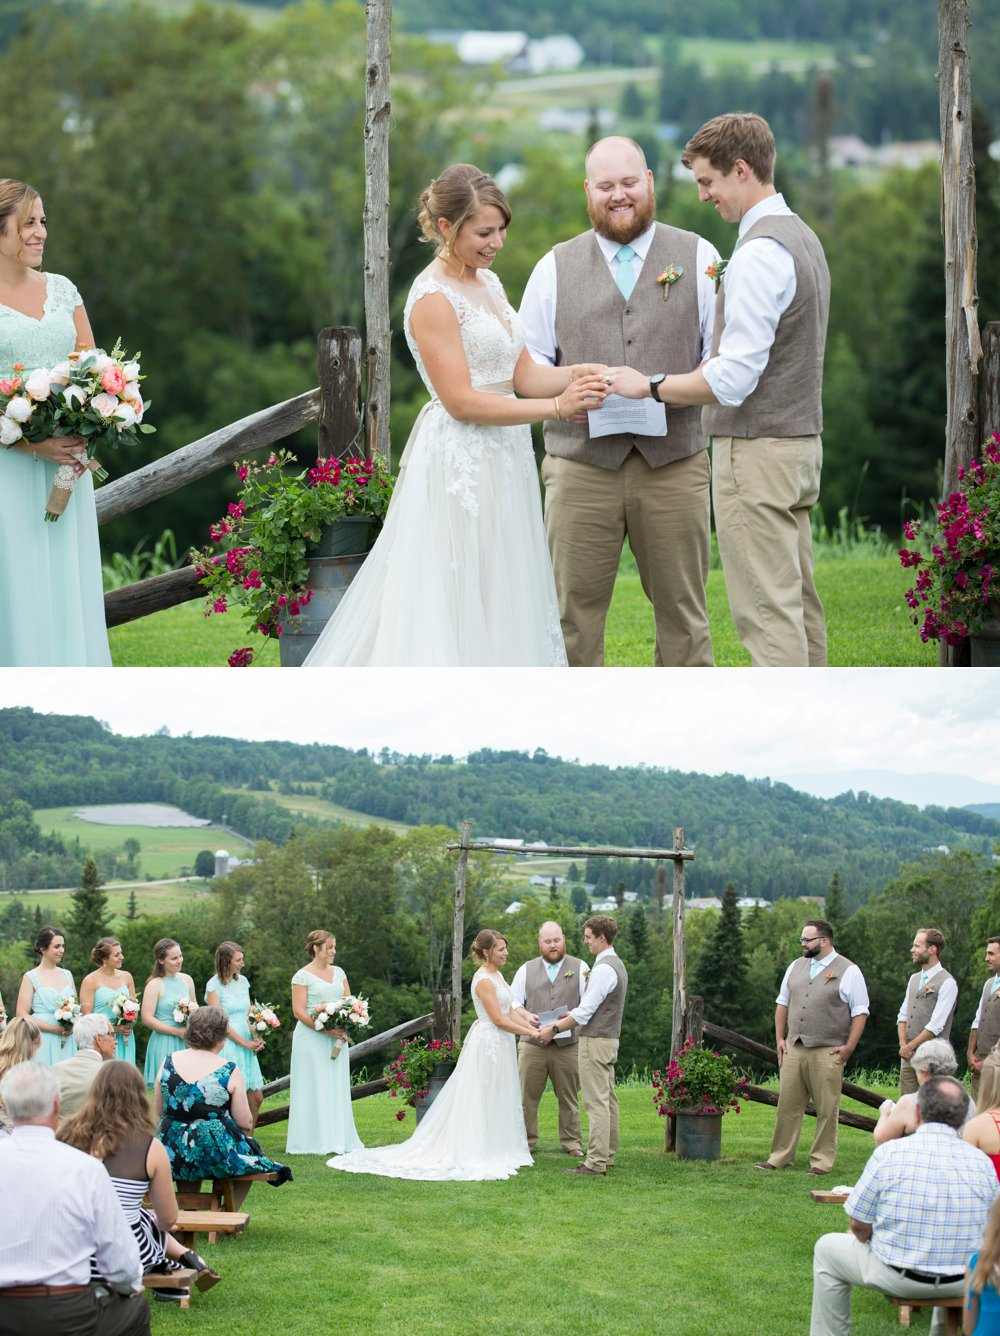 SomerbyJonesPhotography_VermontWedding_CyrBarn_CryBarnWedding_0028.jpg